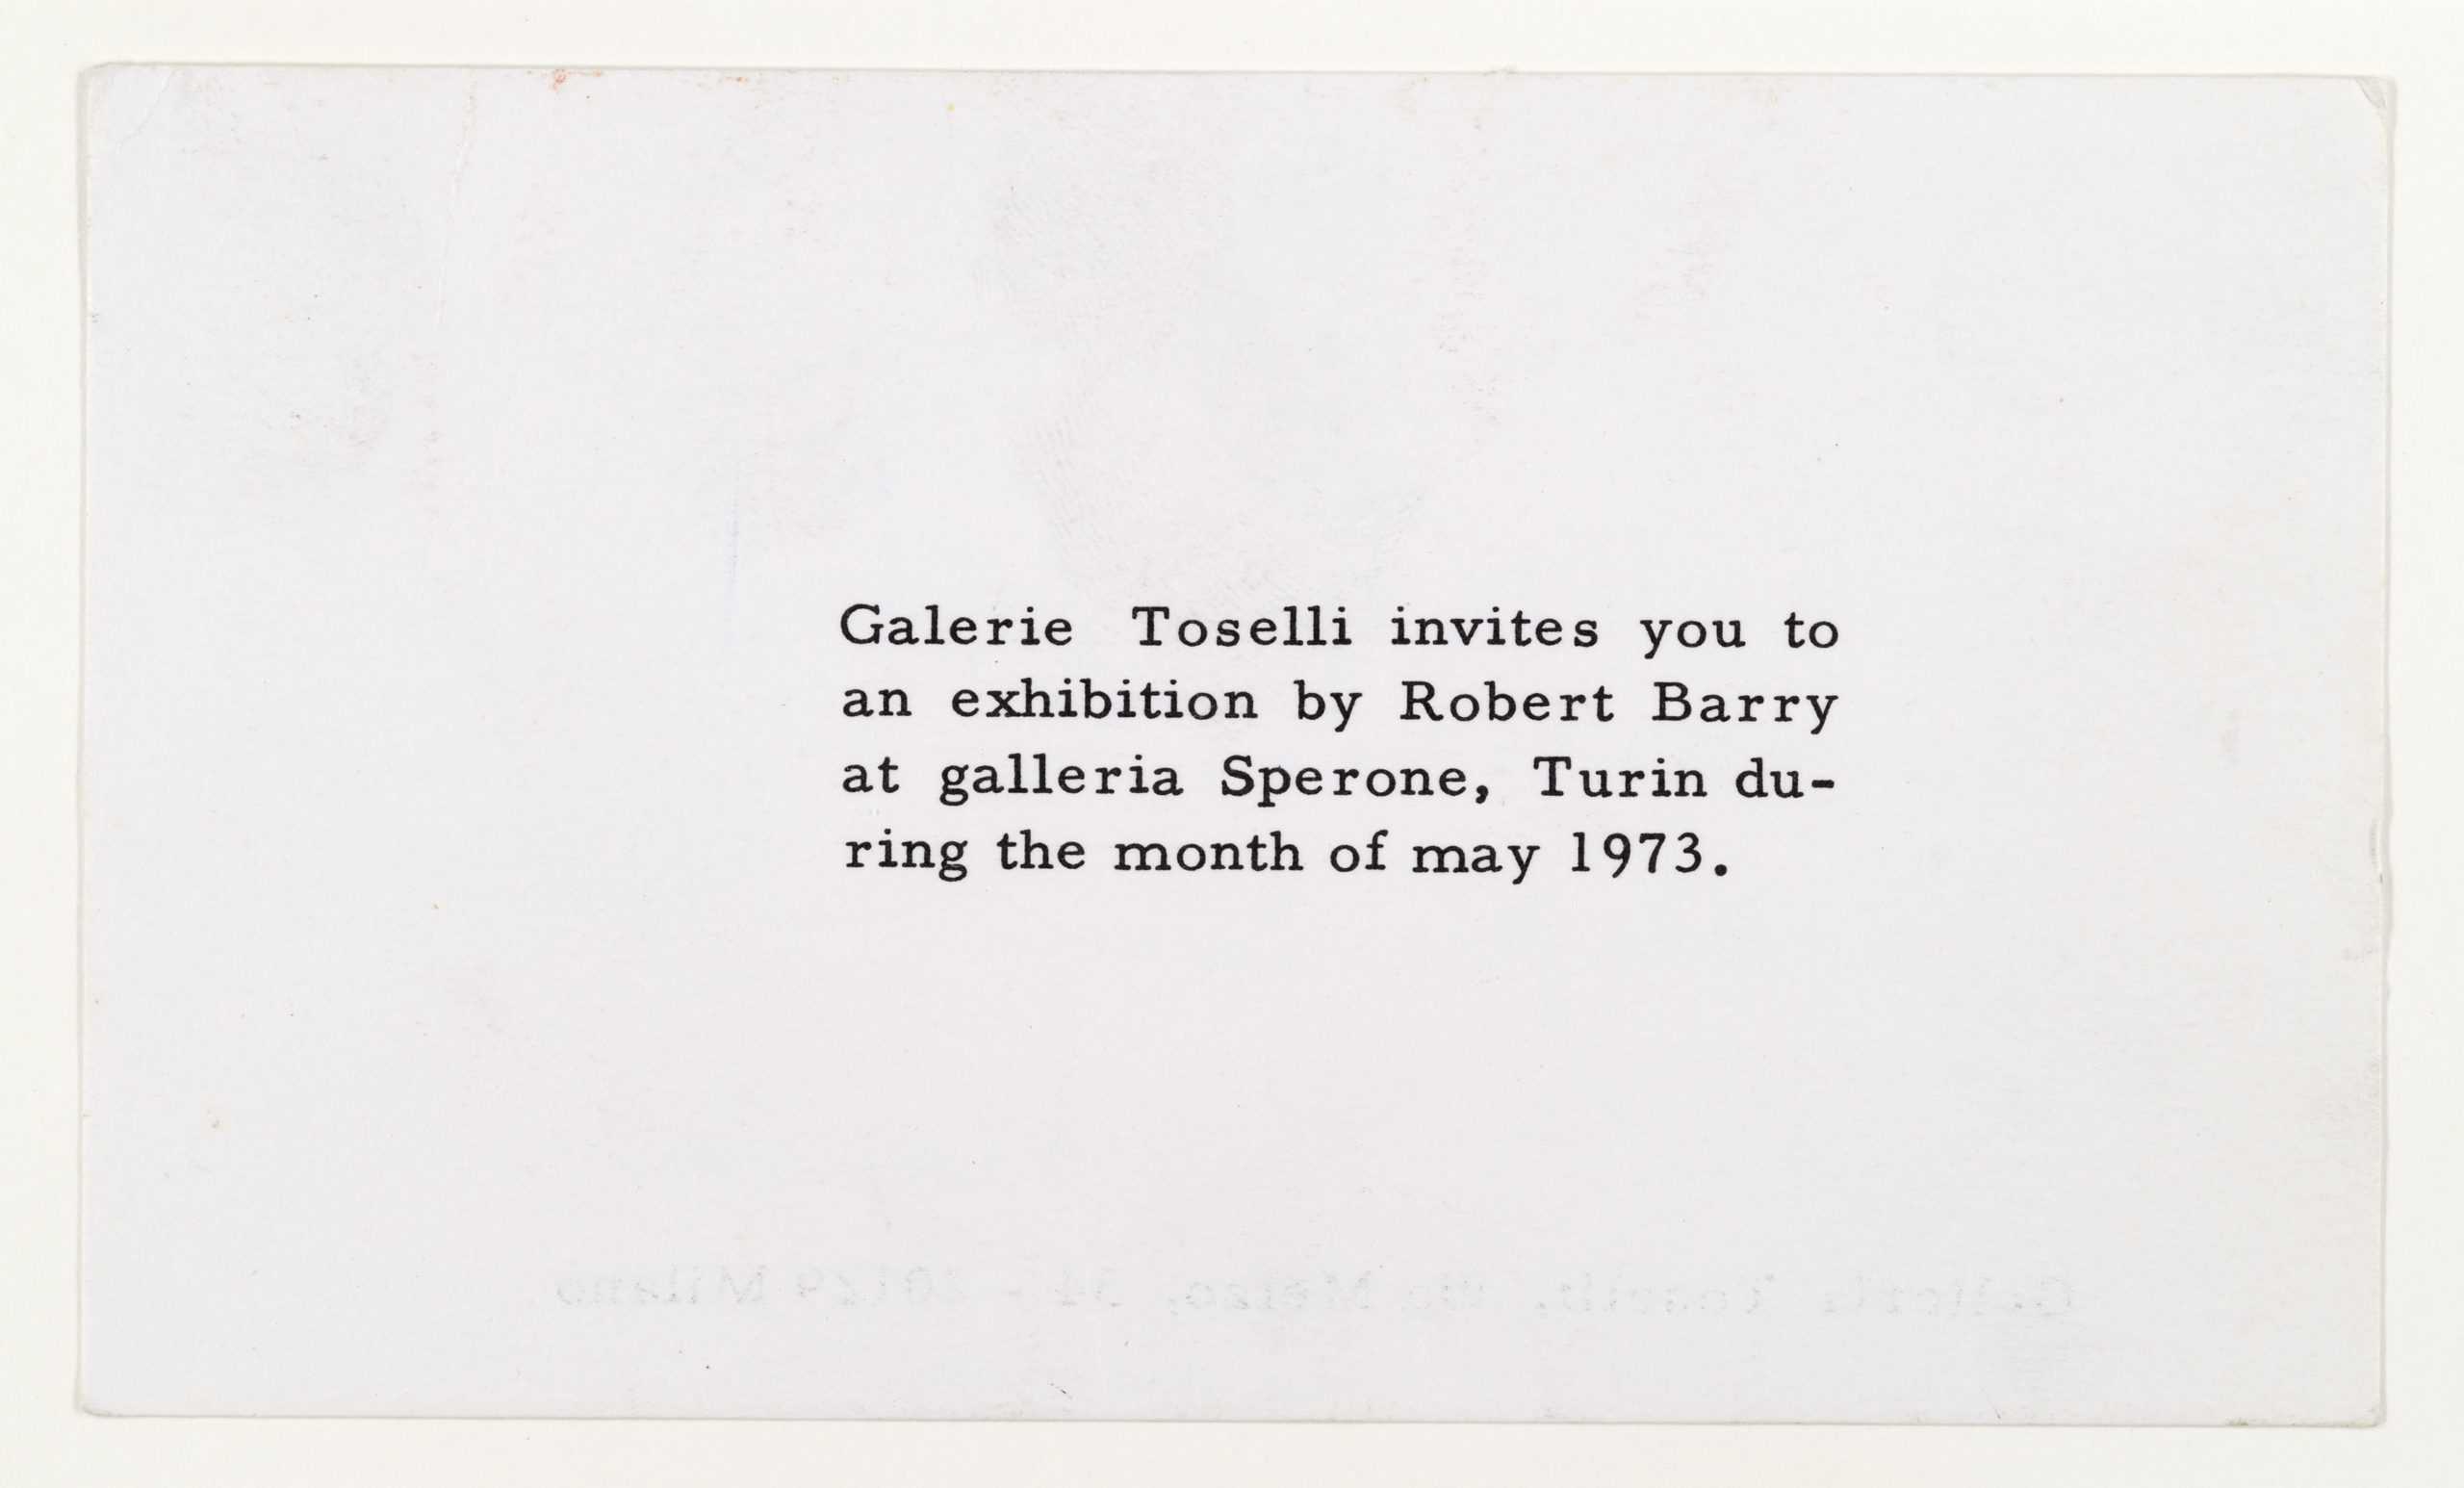 Robert Barry, Invitation Project, Galleria Toselli, Milan invites to Sperone, Turino, June 1973 (Invitation); Sammlung Marzona, Kunstbibliothek – Staatliche Museen zu Berlin